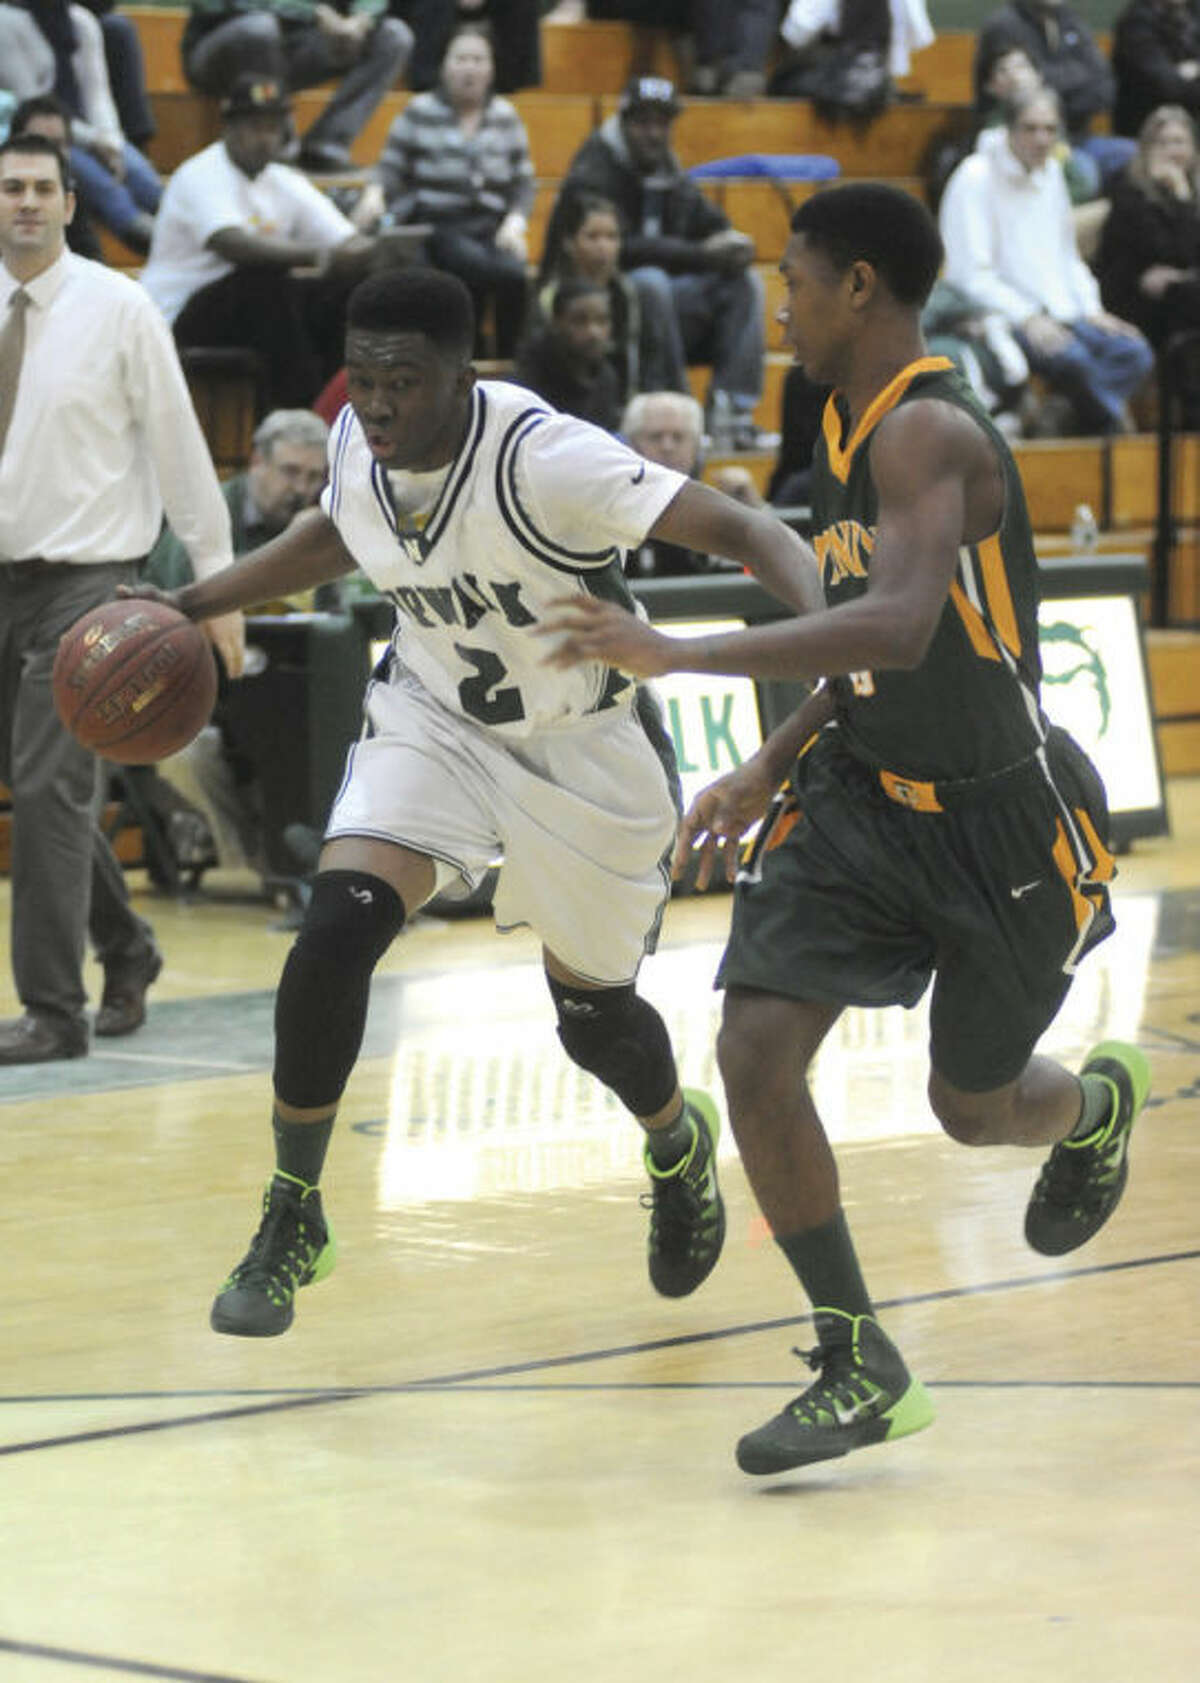 Hour photo/John Nash Norwalk's Zaire Wilson, left, drives past Trinity Catholic's Tremaine Frasier during the fourth quarter of Tuesday's FCIAC boys basketball game at Scarso Gym. The Bears scored a 58-53 victory against the visiting Crusaders.